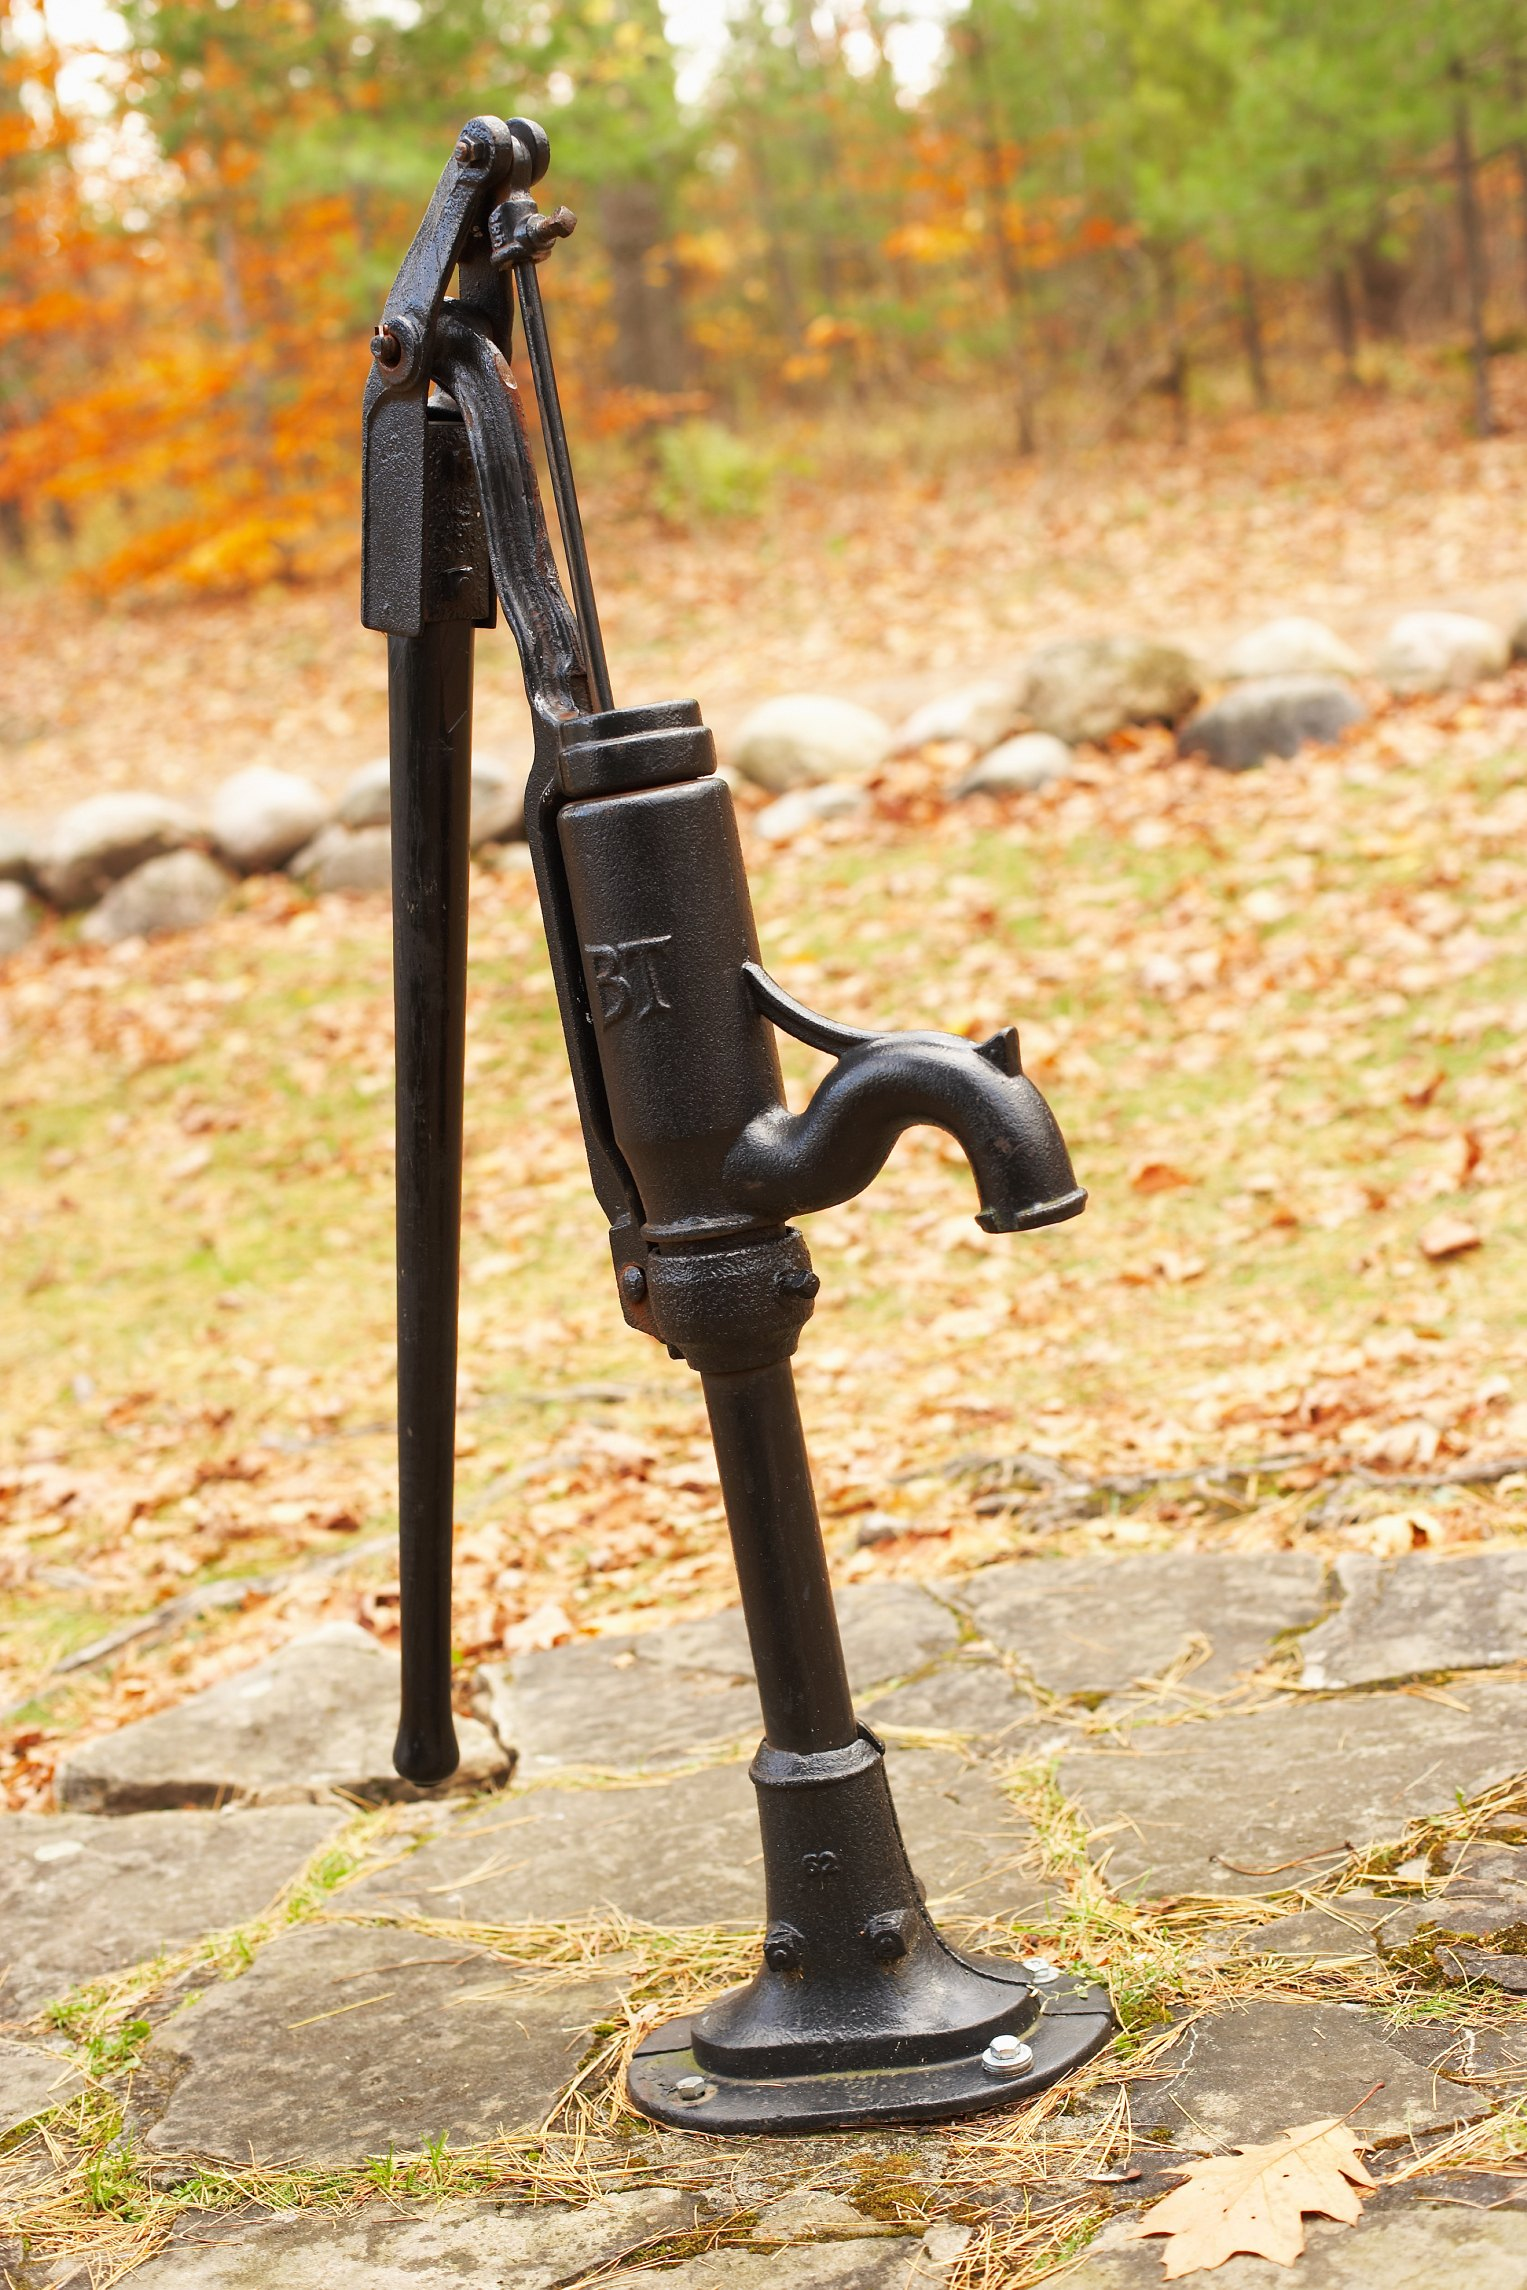 How To Drill A Water Well In Your Backyard Ehow